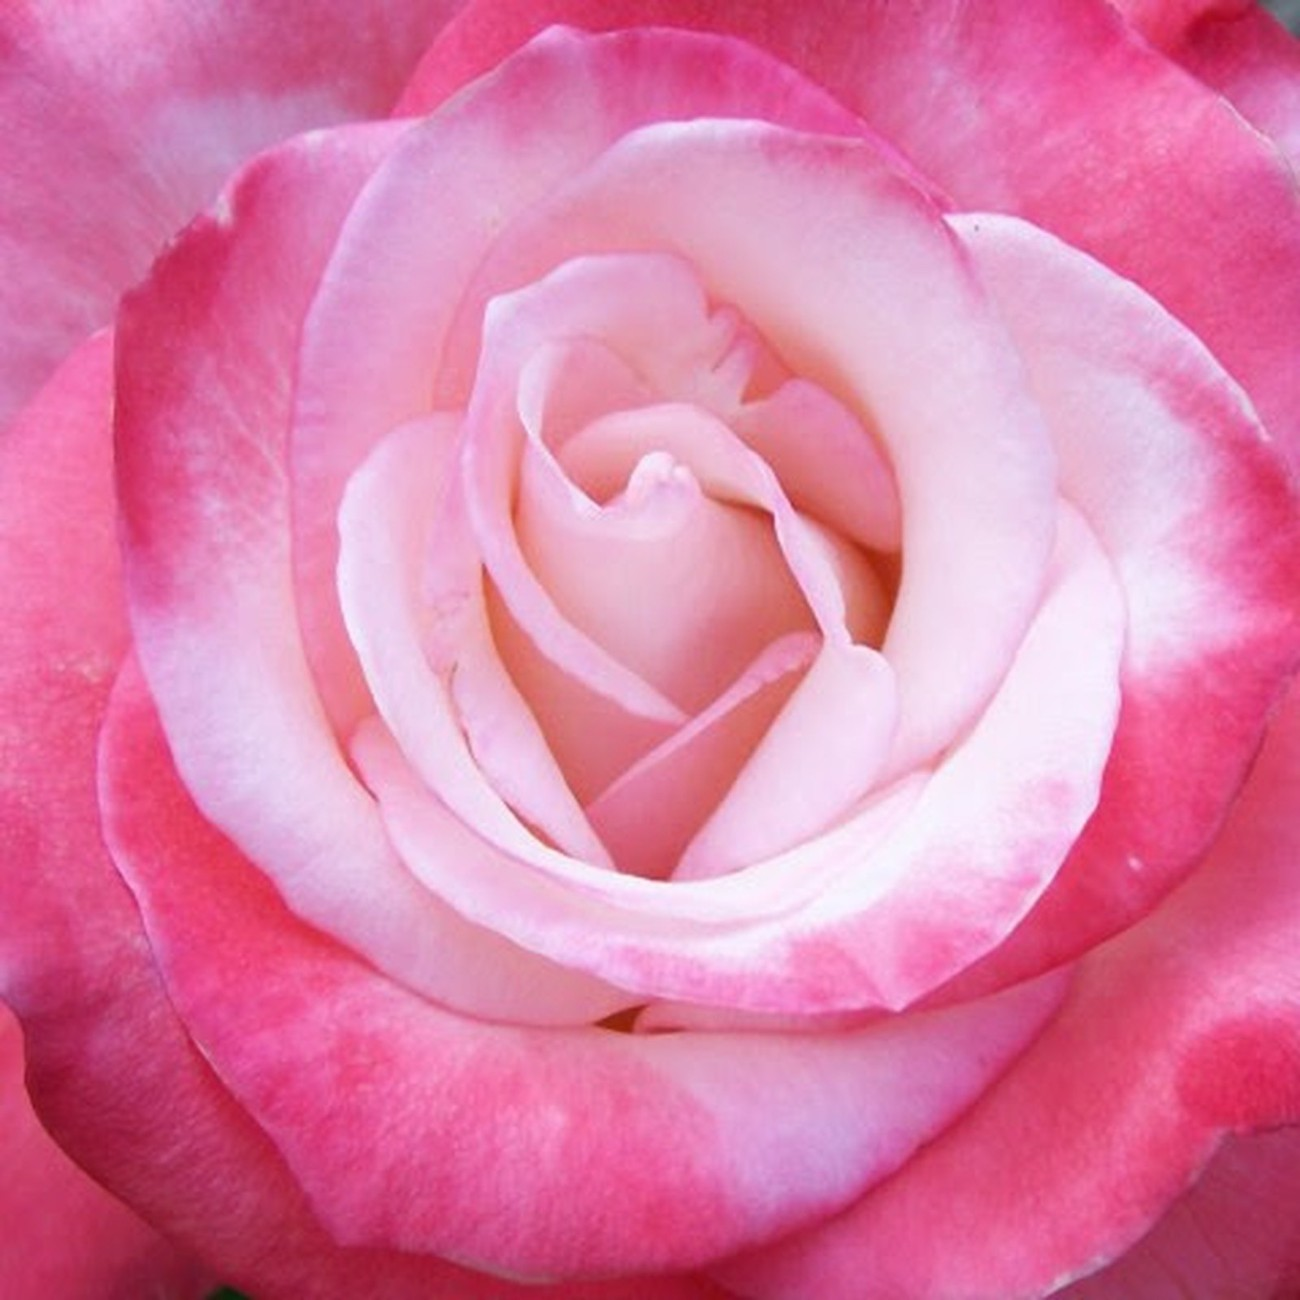 A true masterpiece of the master rose grower!